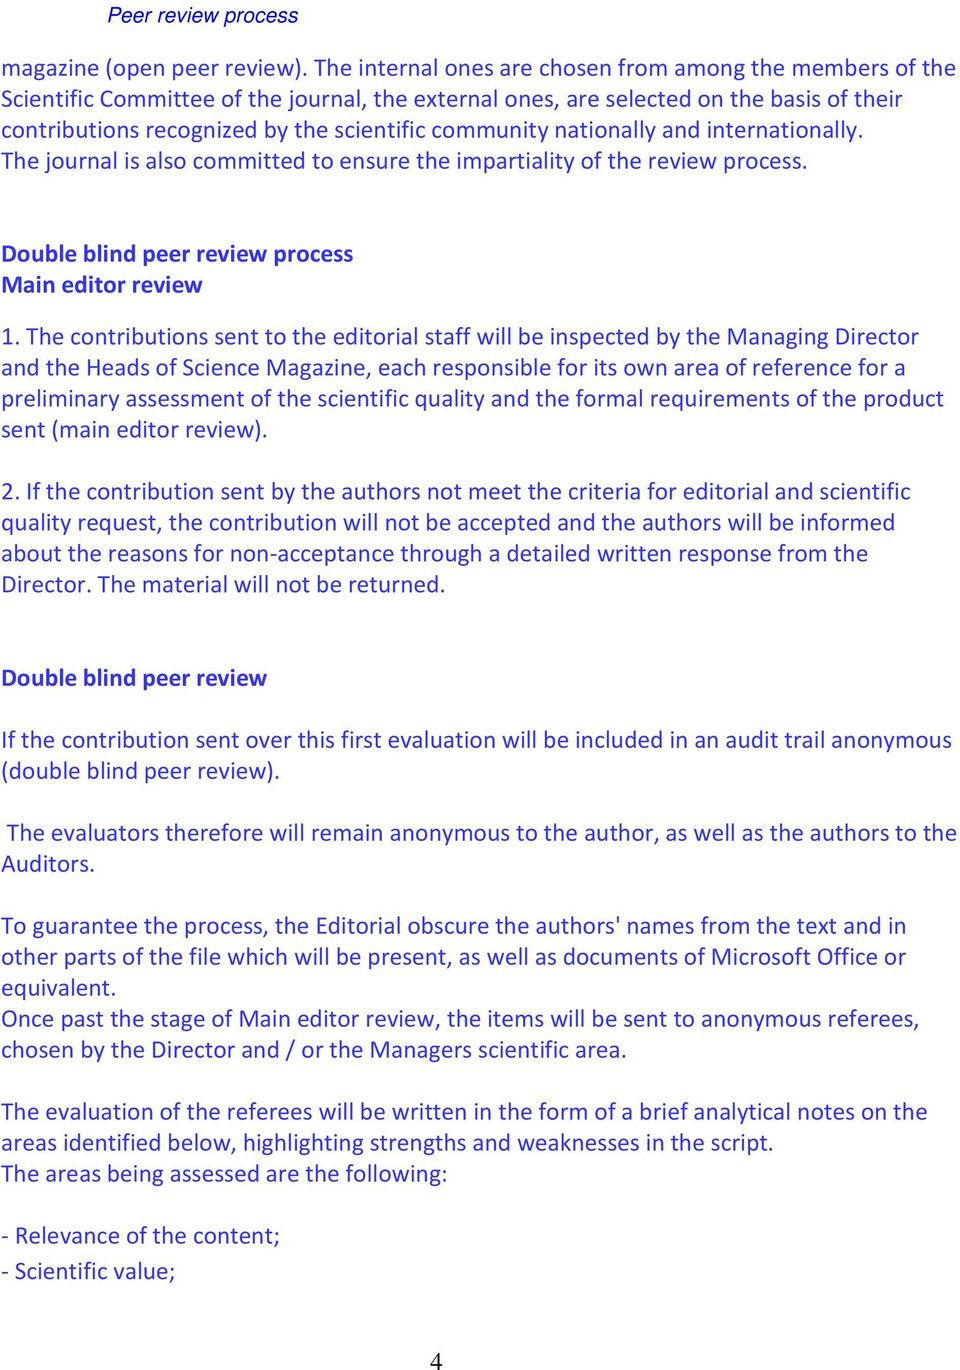 community nationally and internationally. The journal is also committed to ensure the impartiality of the review process. Double blind peer review process Main editor review 1.